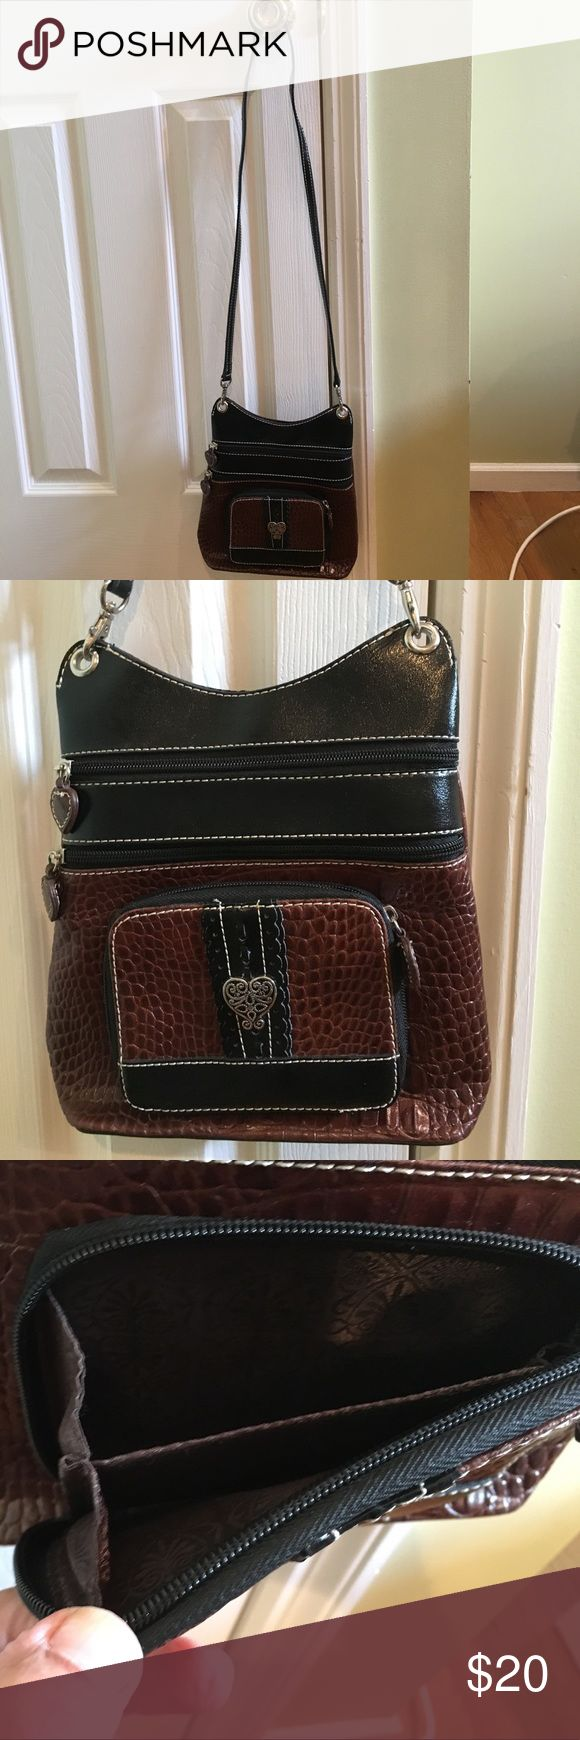 Cute crossbody black and brown handbag. Cute crossbody bag with 3 Zipper compartments. Top compartment is small. The 3 other zipper compartments are larger     Front  can be used as a wallet. Bags Crossbody Bags